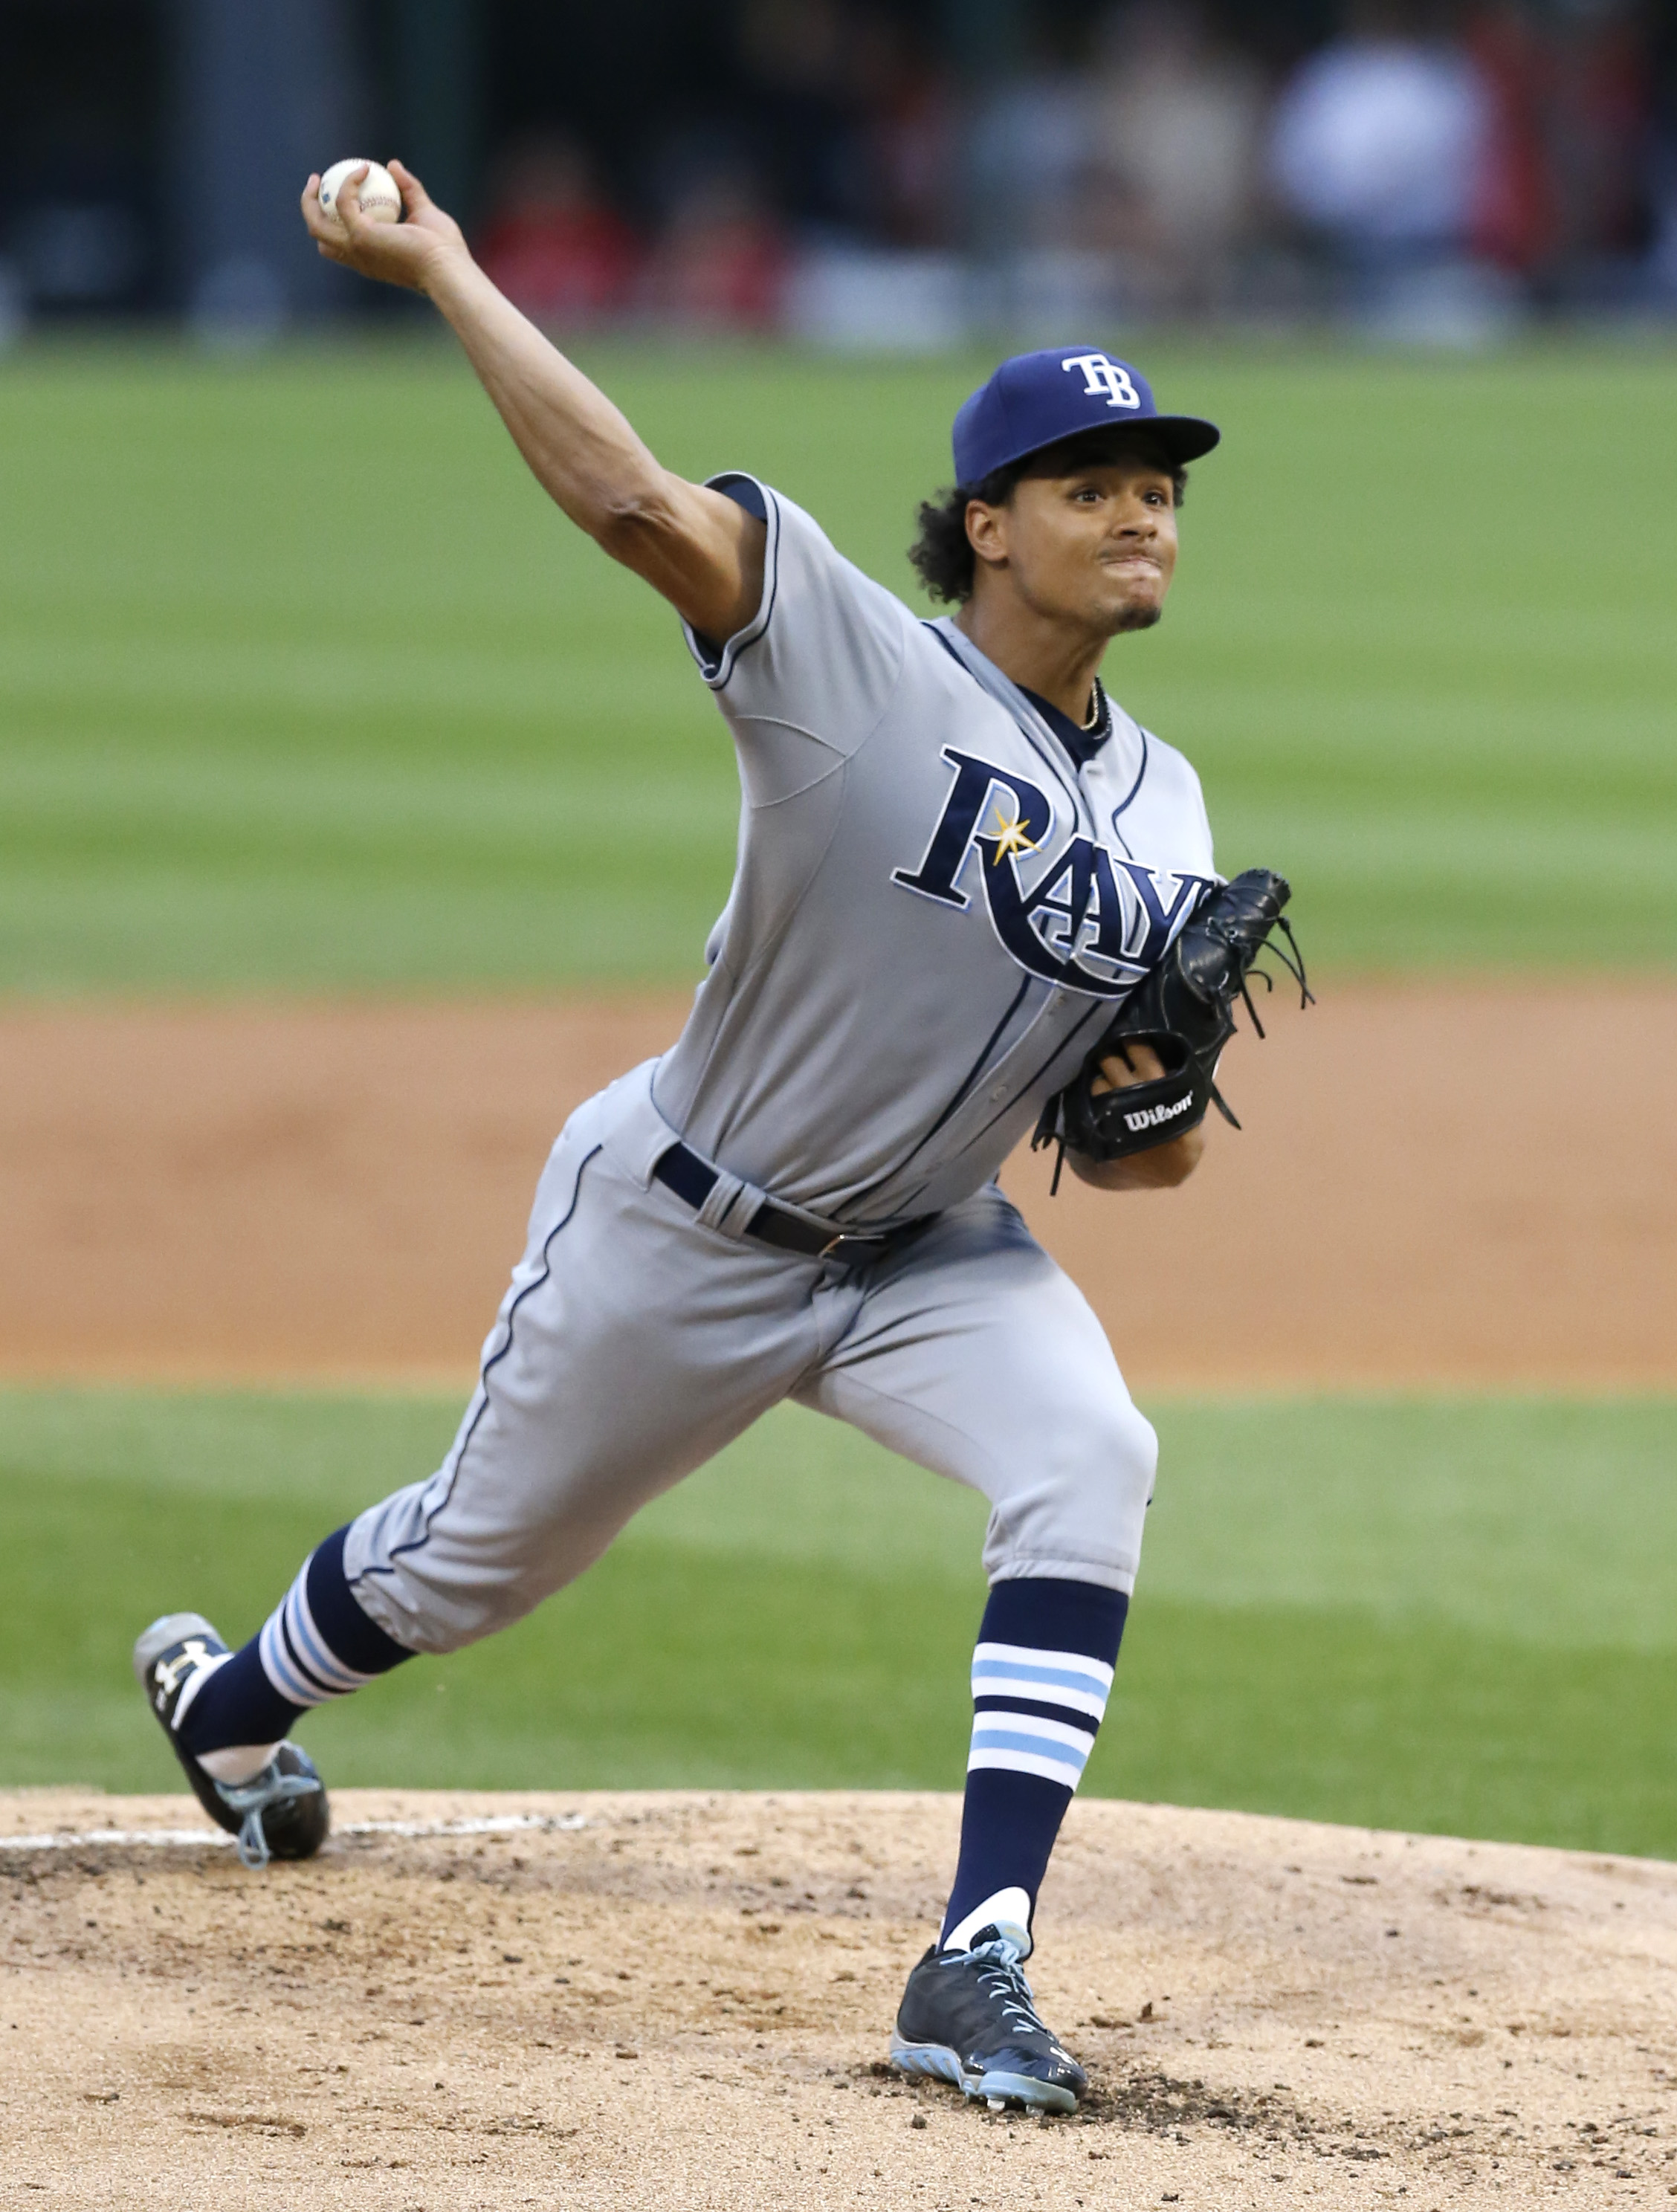 Tampa Bay Rays starting pitcher Chris Archer delivers during the first inning of a baseball game against the Chicago White Sox Tuesday, Aug. 4, 2015, in Chicago. (AP Photo/Charles Rex Arbogast)